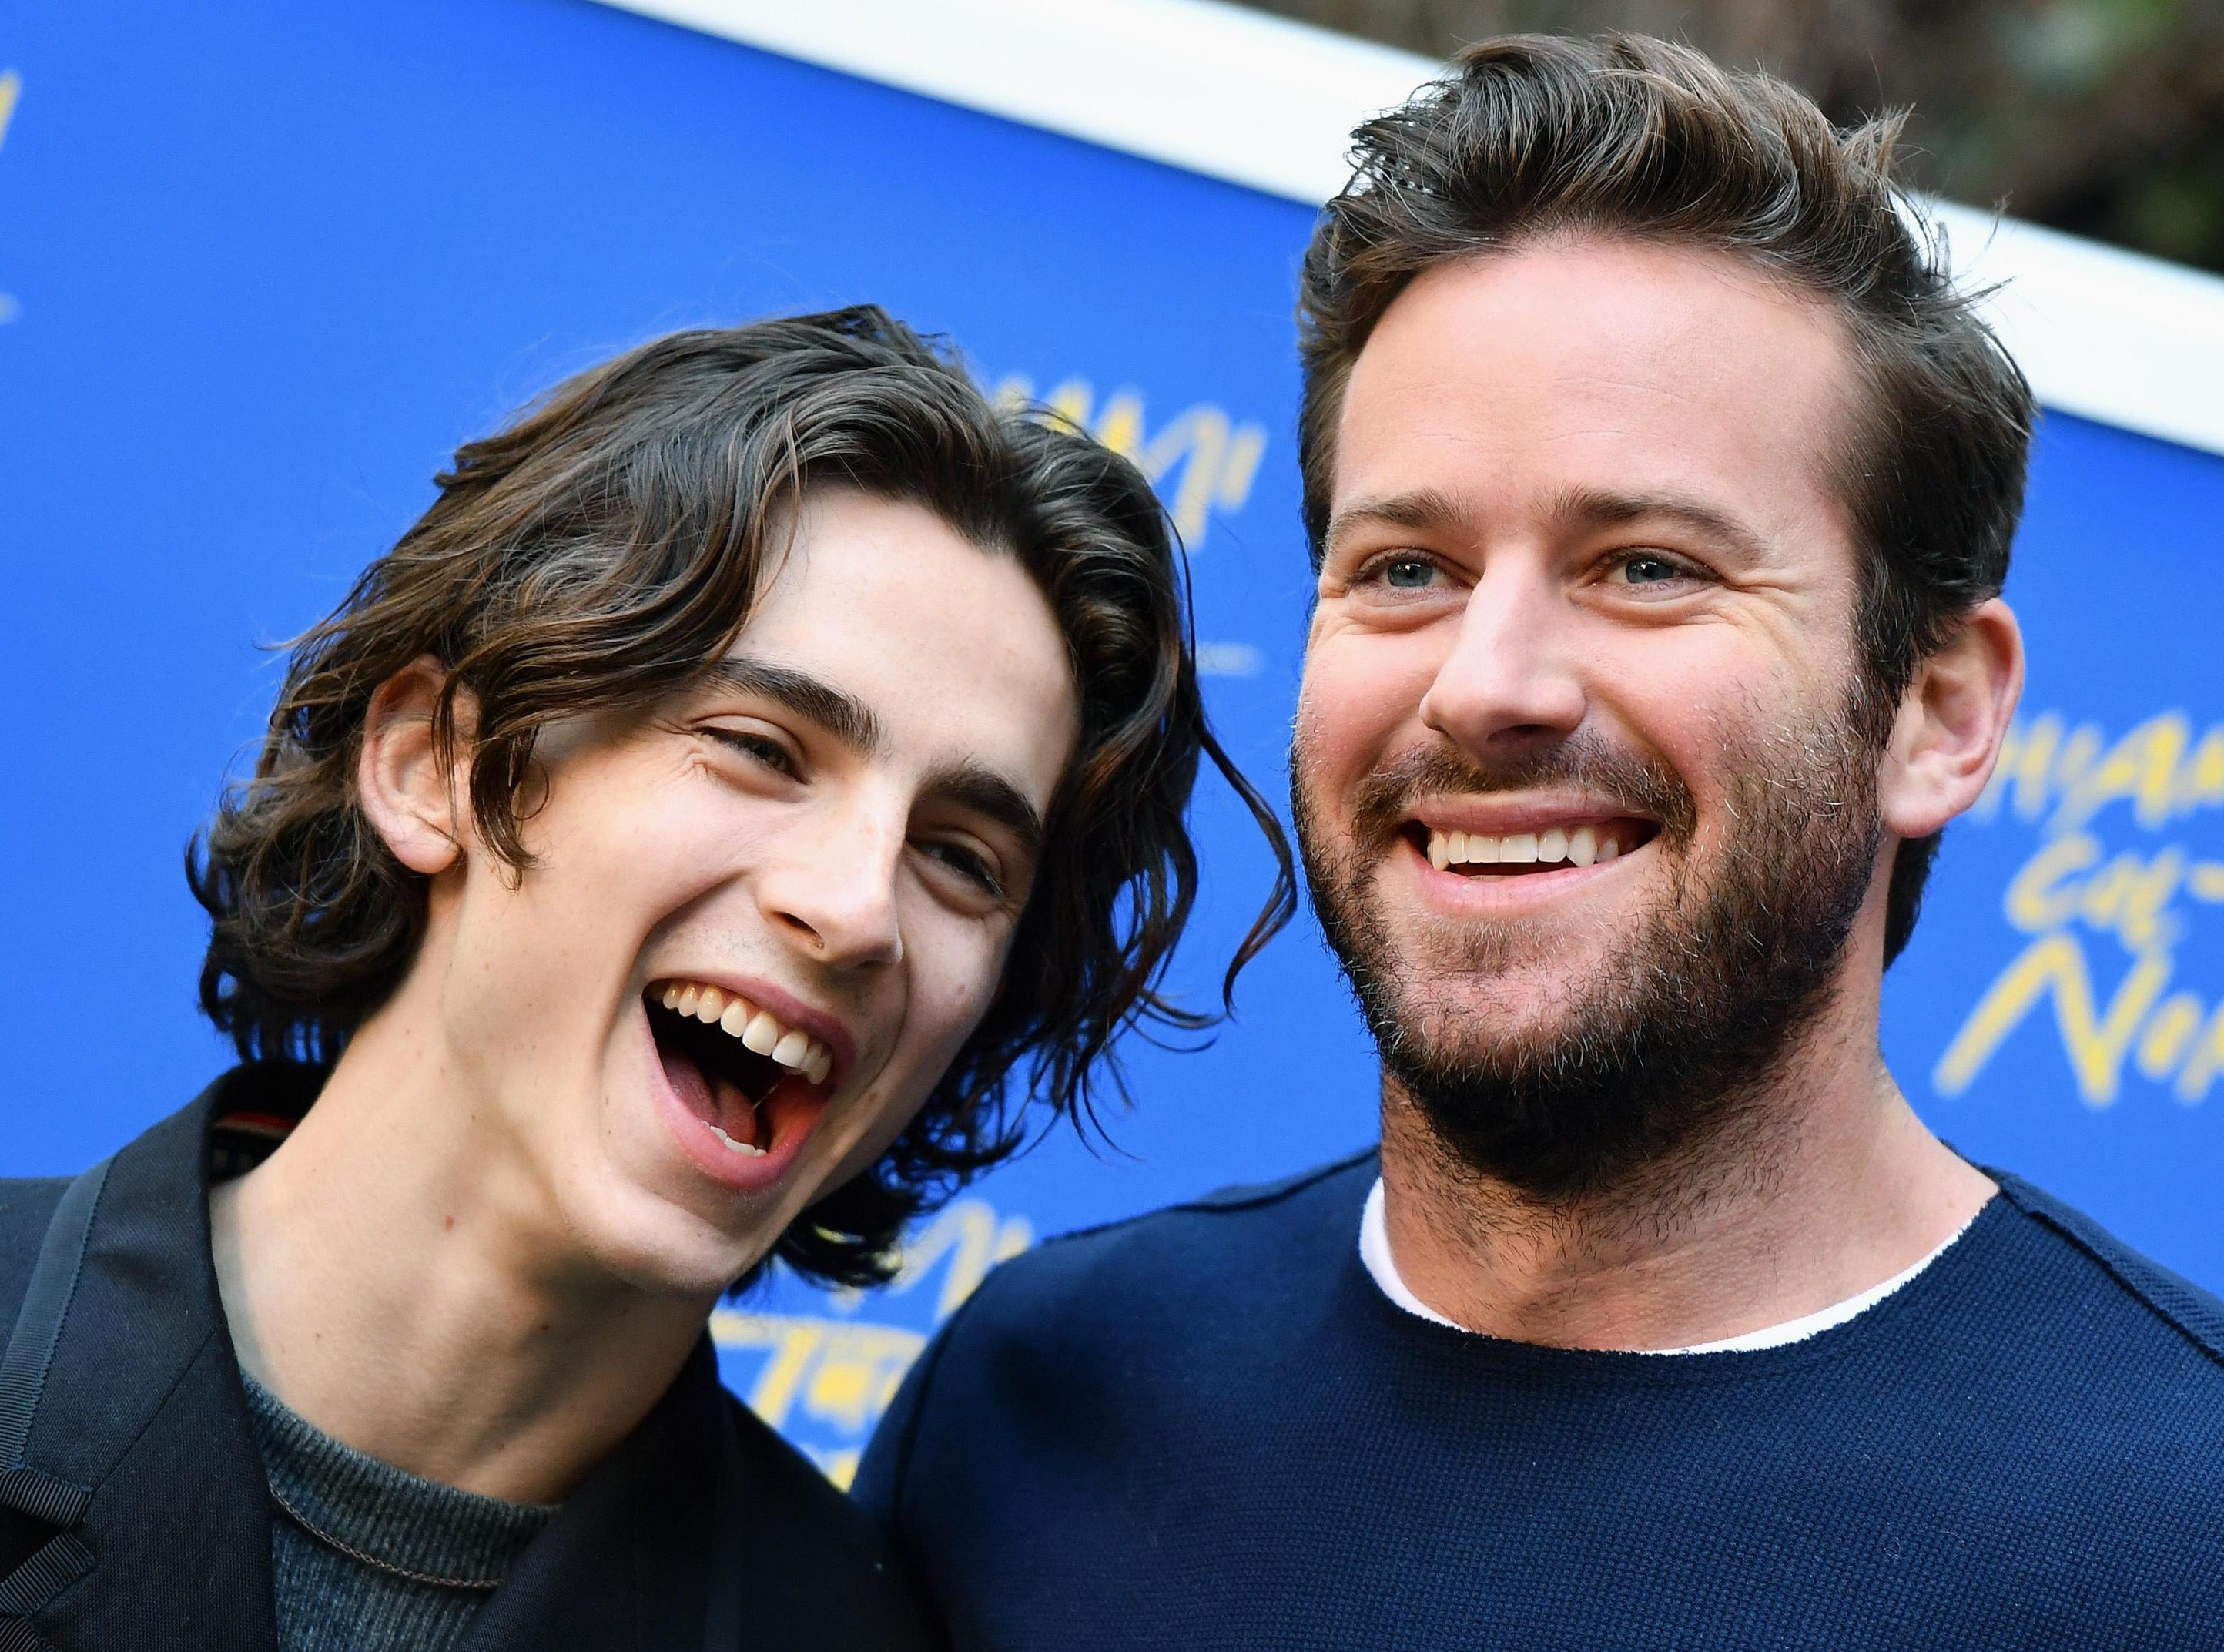 """Jan. 24: """"Call Me By Your Name"""" co-stars Timothée Chalamet and Armie Hammer smile during a photoshoot for the film in Rome, Italy."""